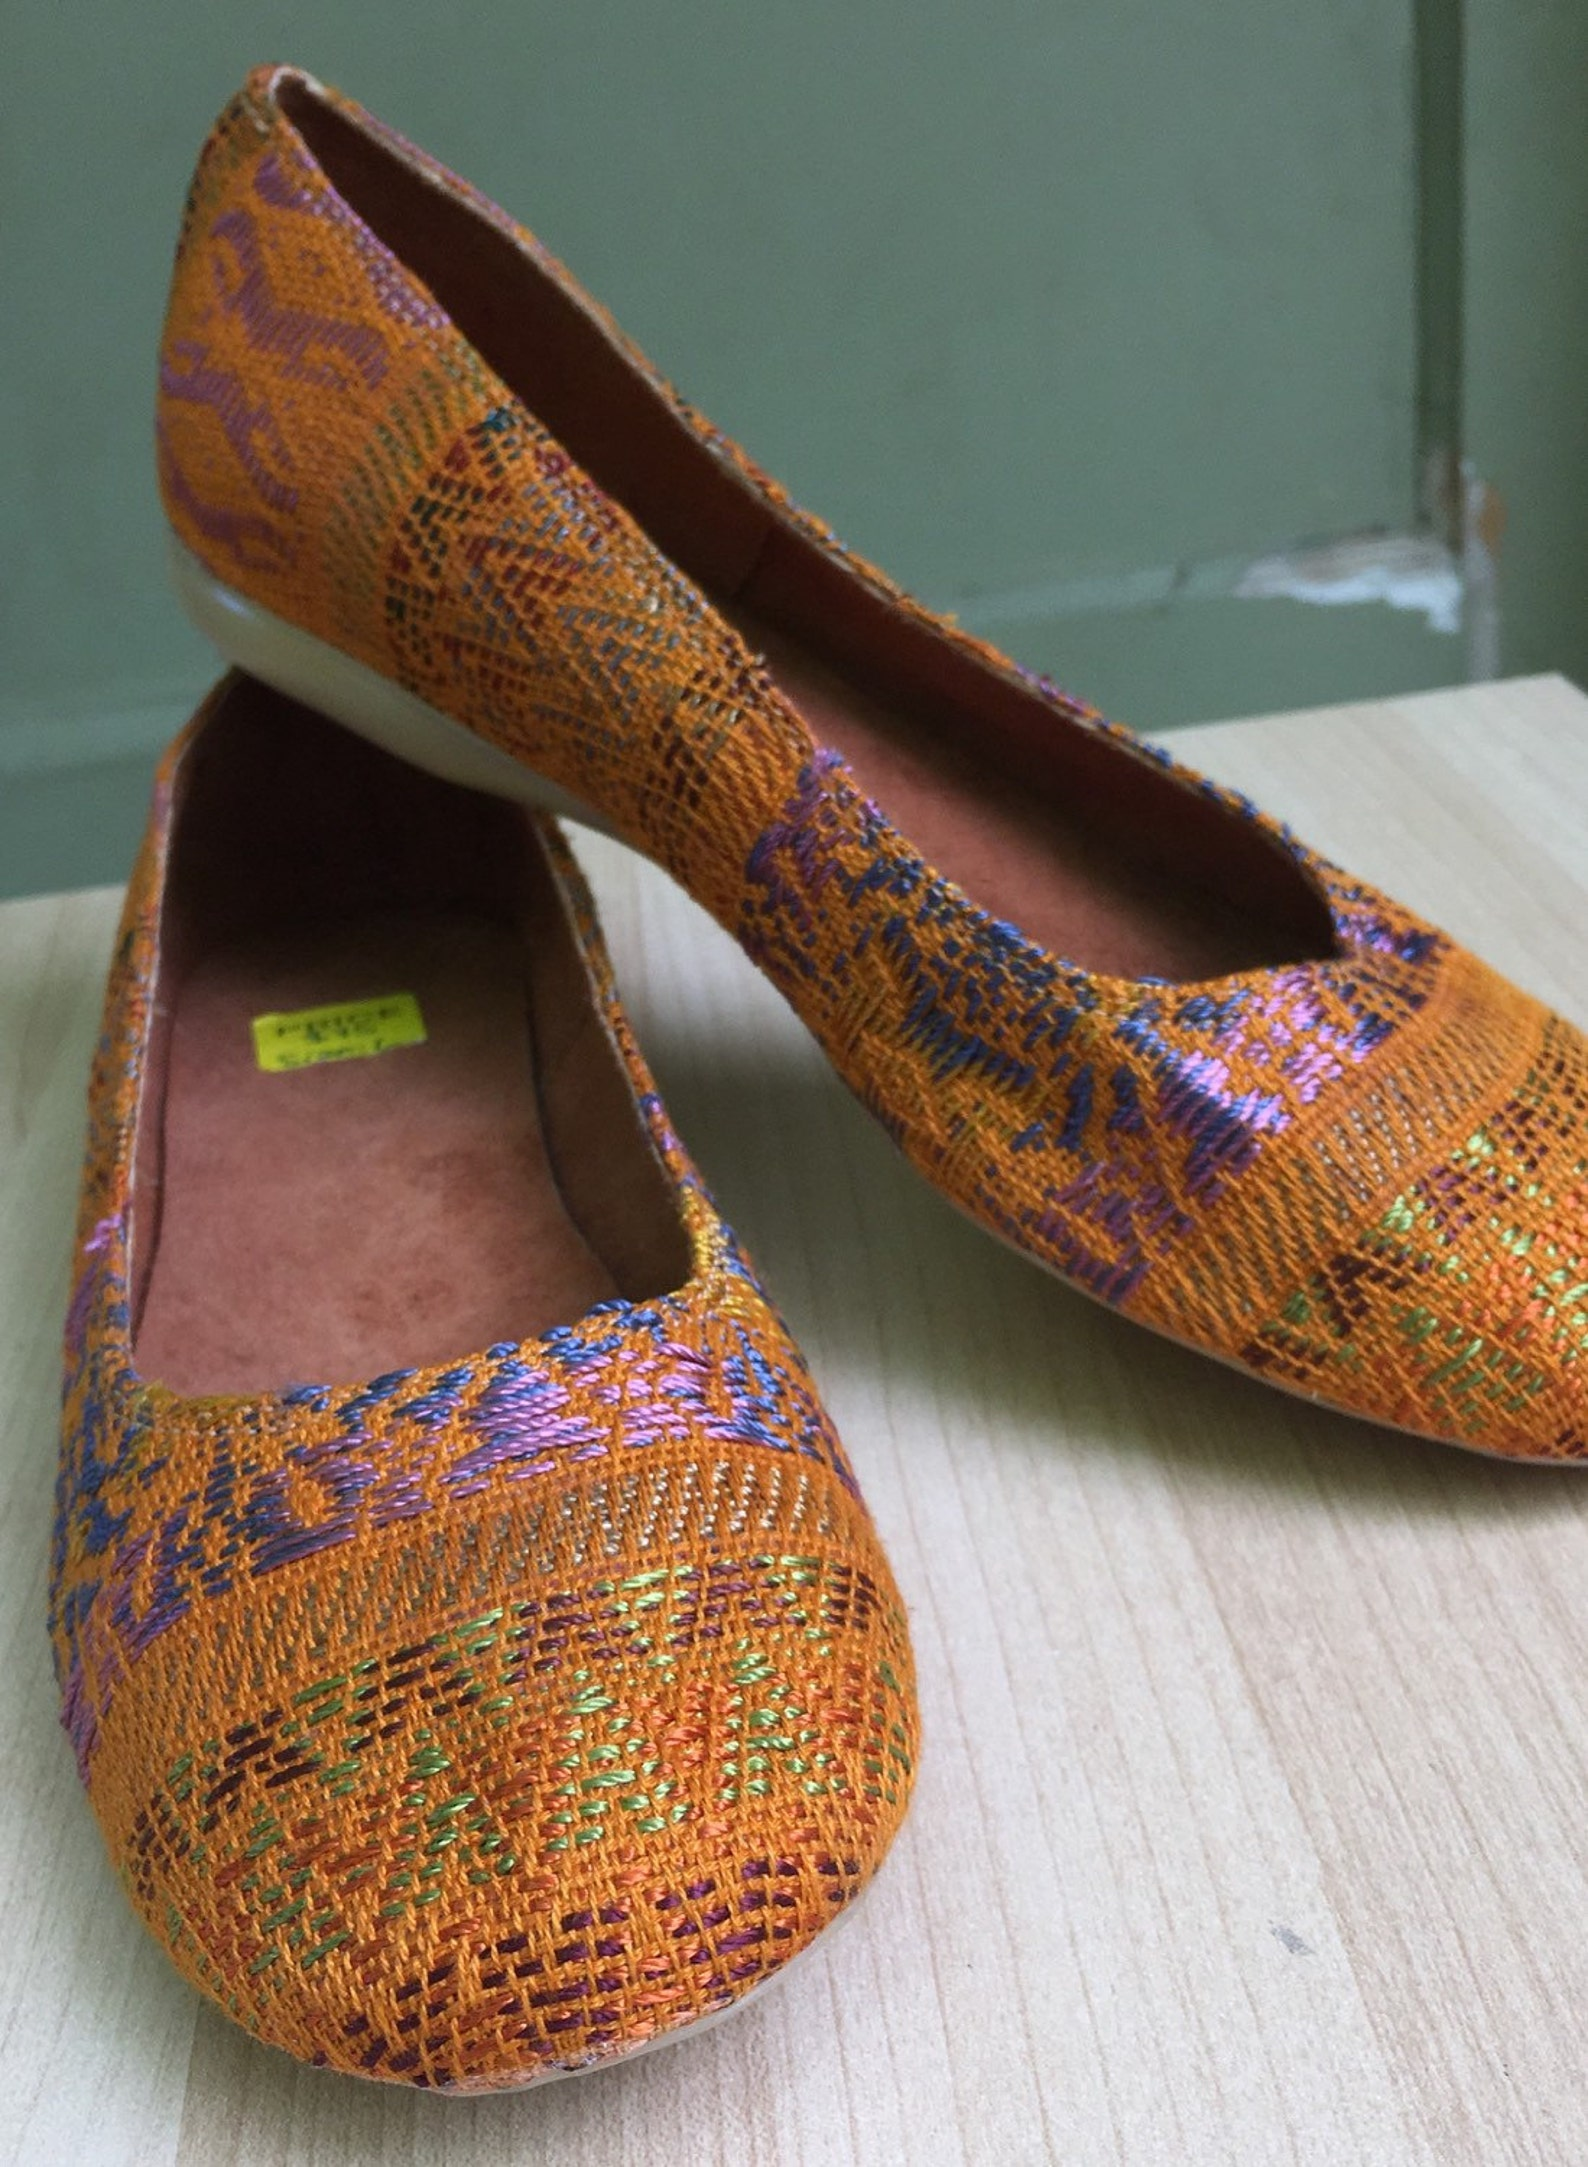 honey, hand embroidered, slip on flats, ballet flats, handmade in guatemala, guipil textiles